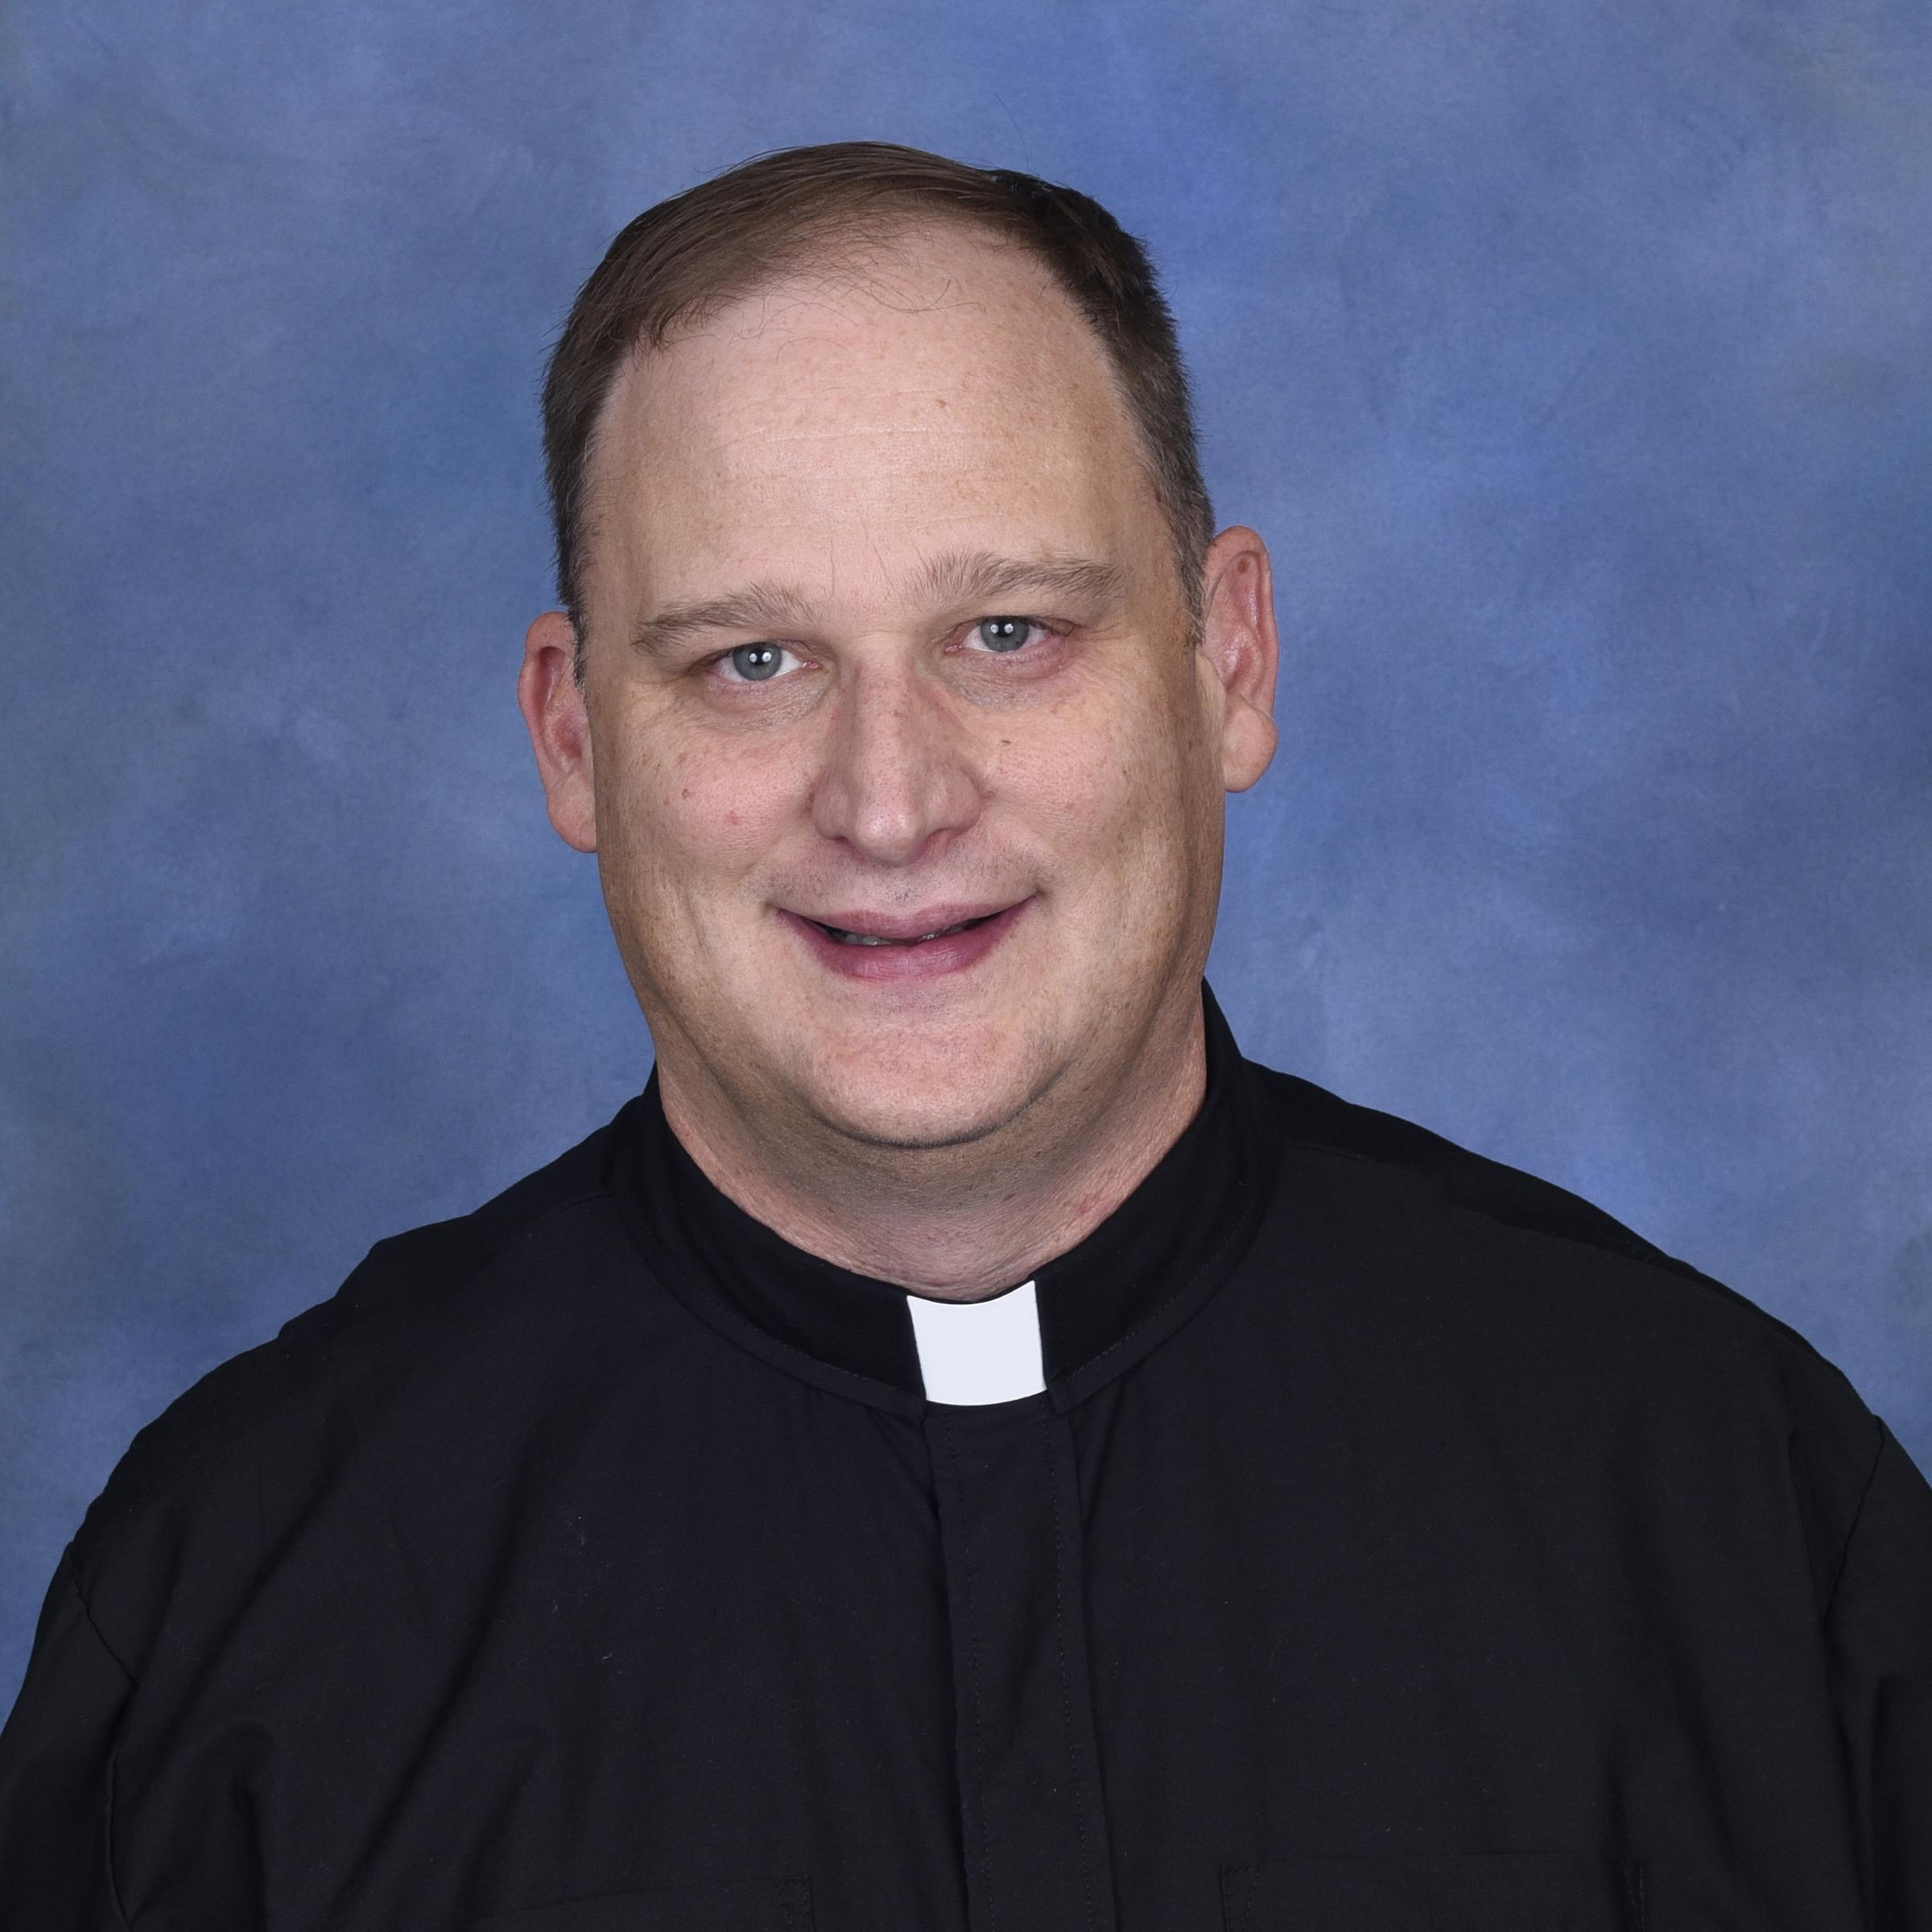 Rev. Sean Downing's Profile Photo